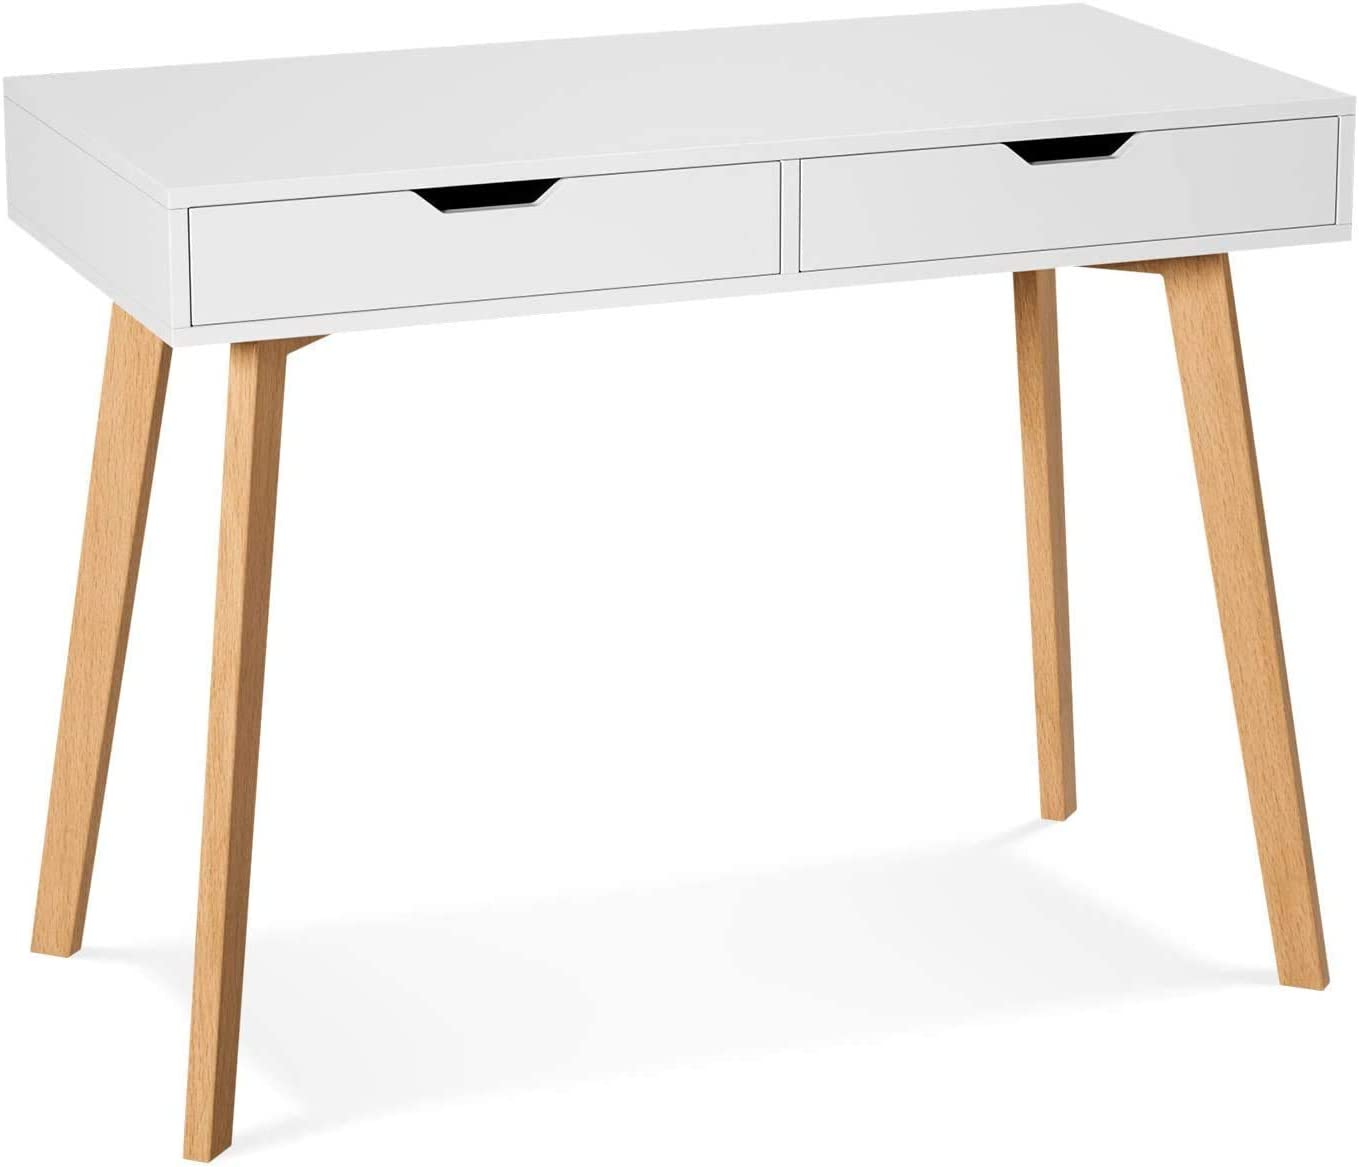 Writing Computer Desk with Two Drawers, Laptop PC Table Workstation for Home Office, Modern Makeup Vanity Table (White)